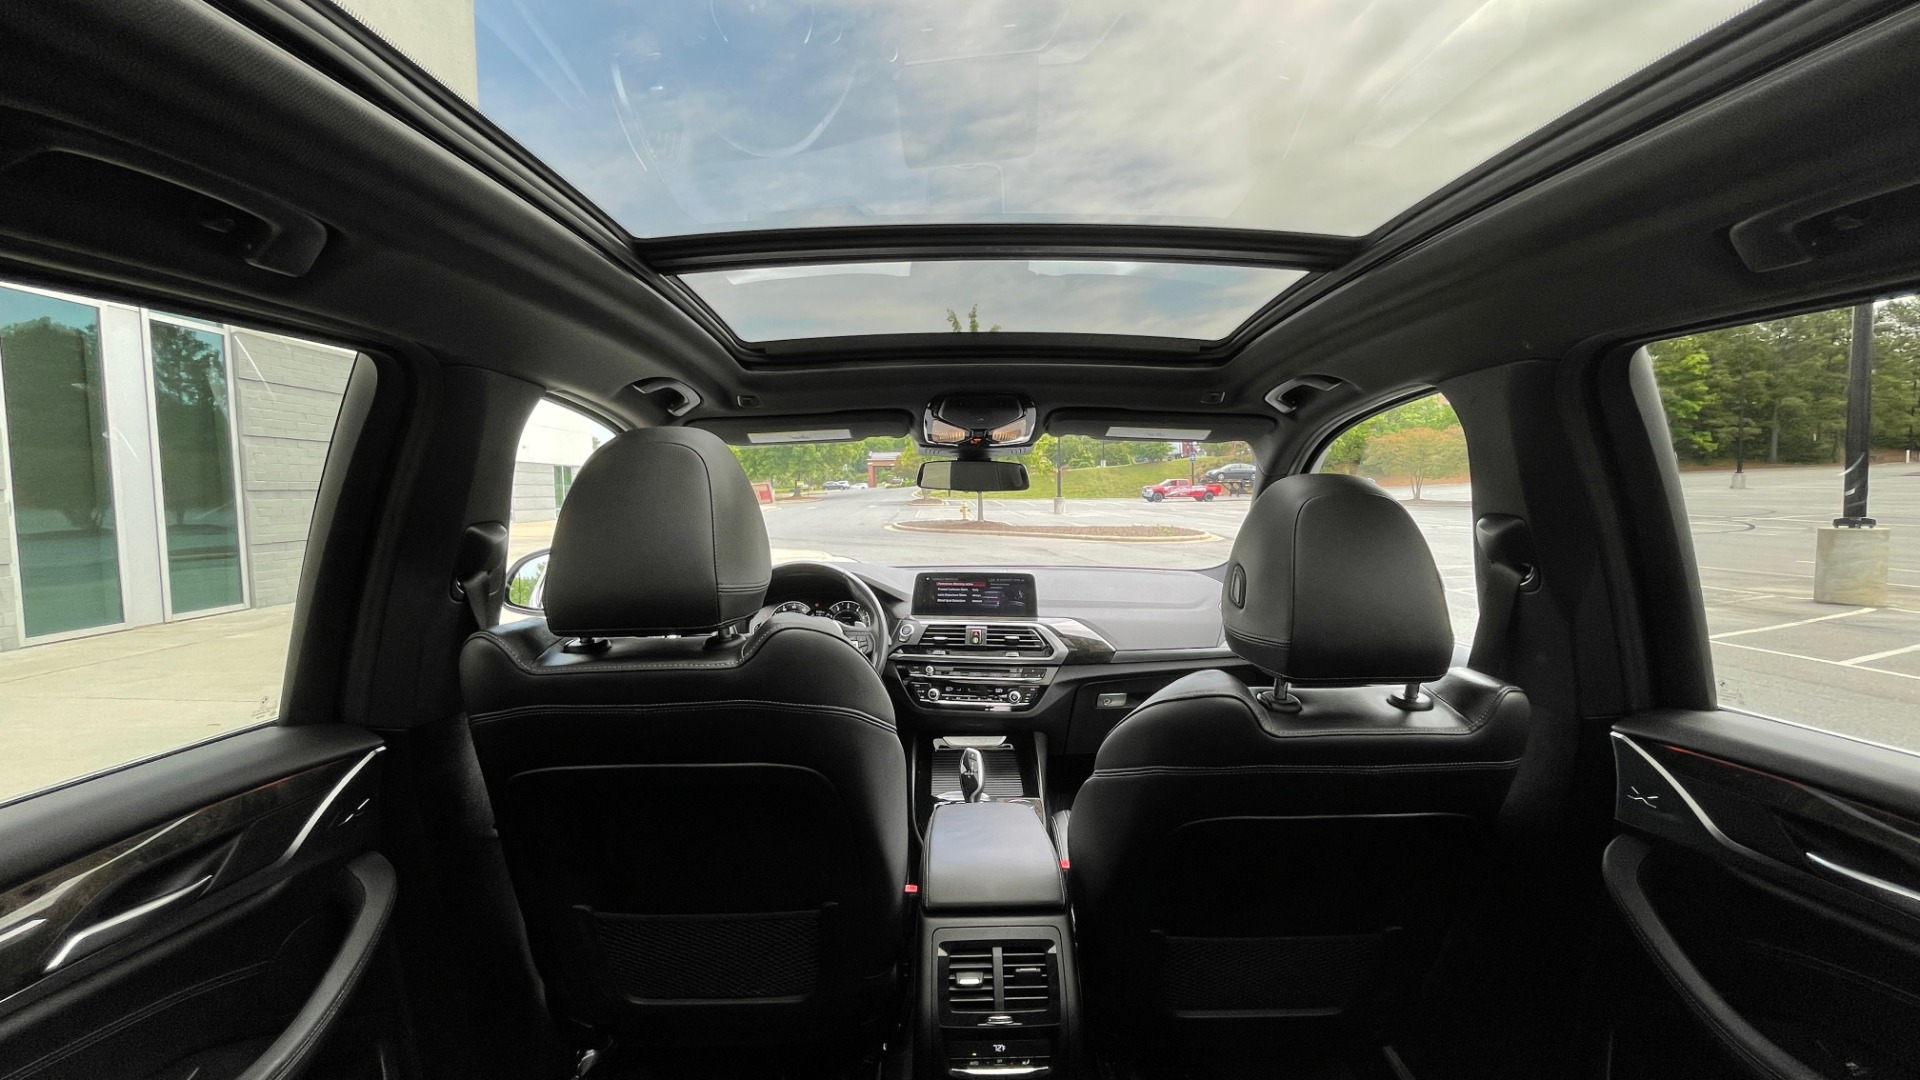 Used 2018 BMW X3 XDRIVE30I PREMIUM / NAV / DRVR ASST / CONV PKG / SUNROOF / REARVIEW for sale $32,695 at Formula Imports in Charlotte NC 28227 80